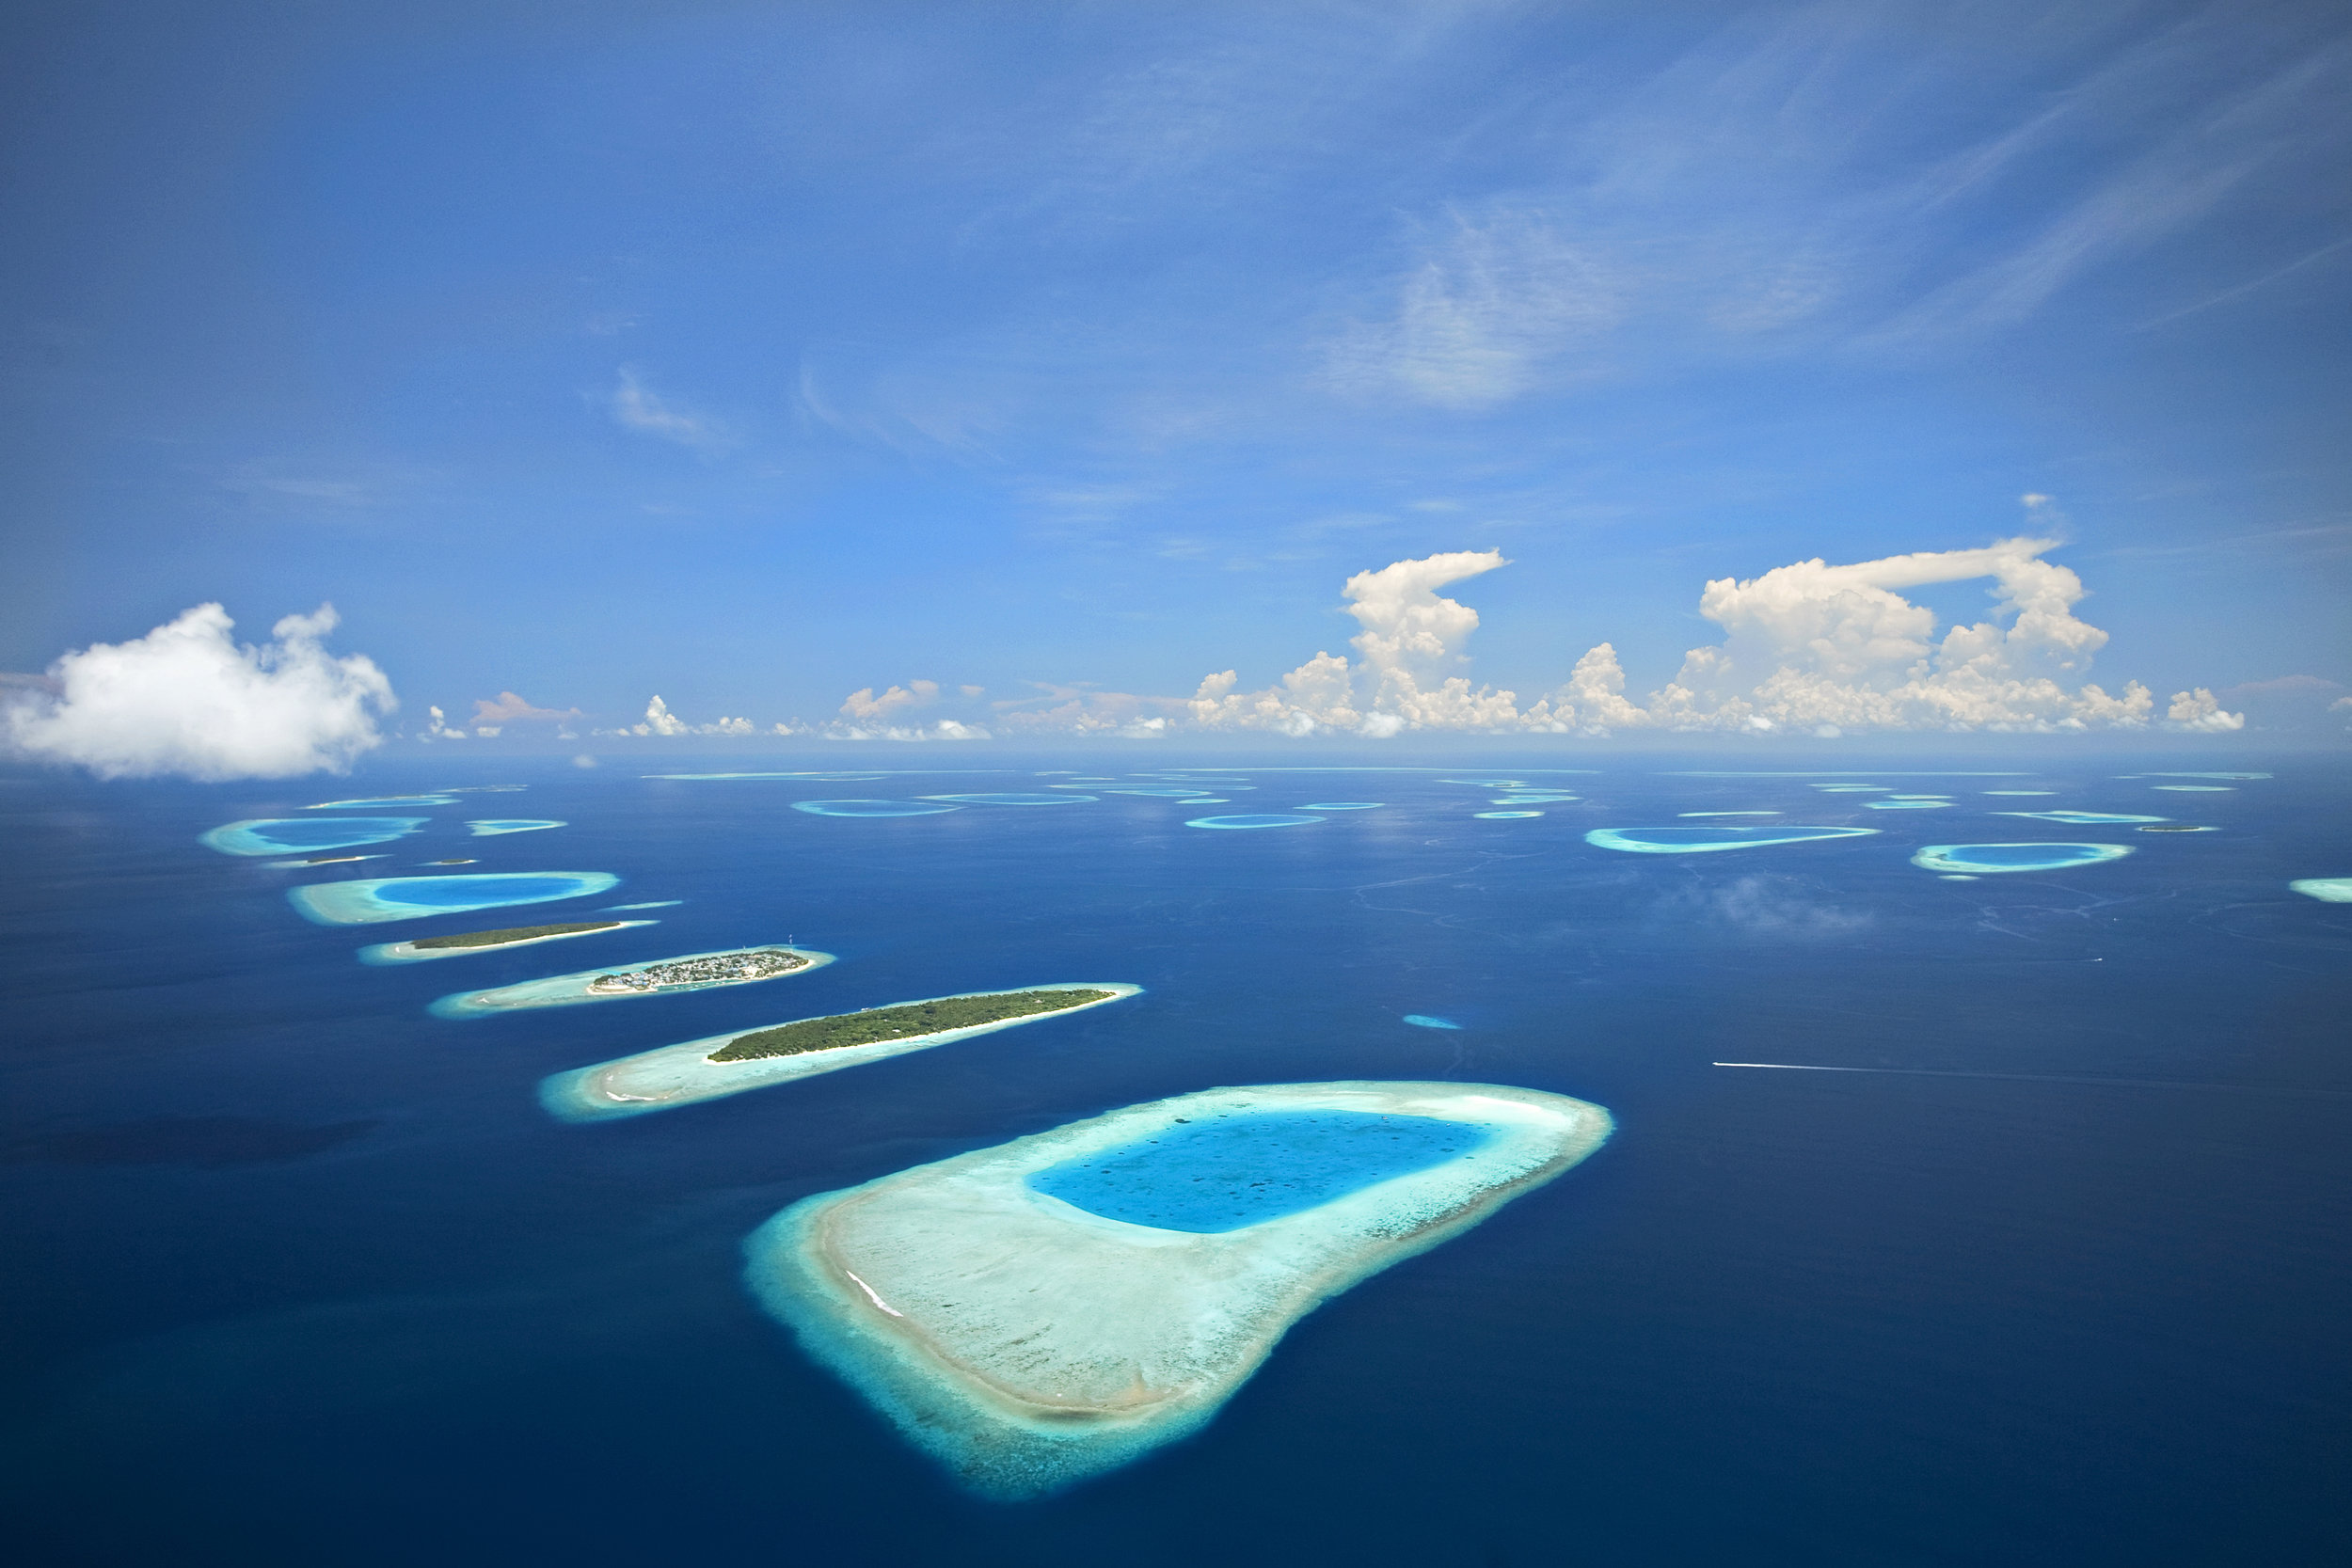 invite-to-paradise-maldives-holiday-honeymoon-packages-specialists-island-resorts.jpg